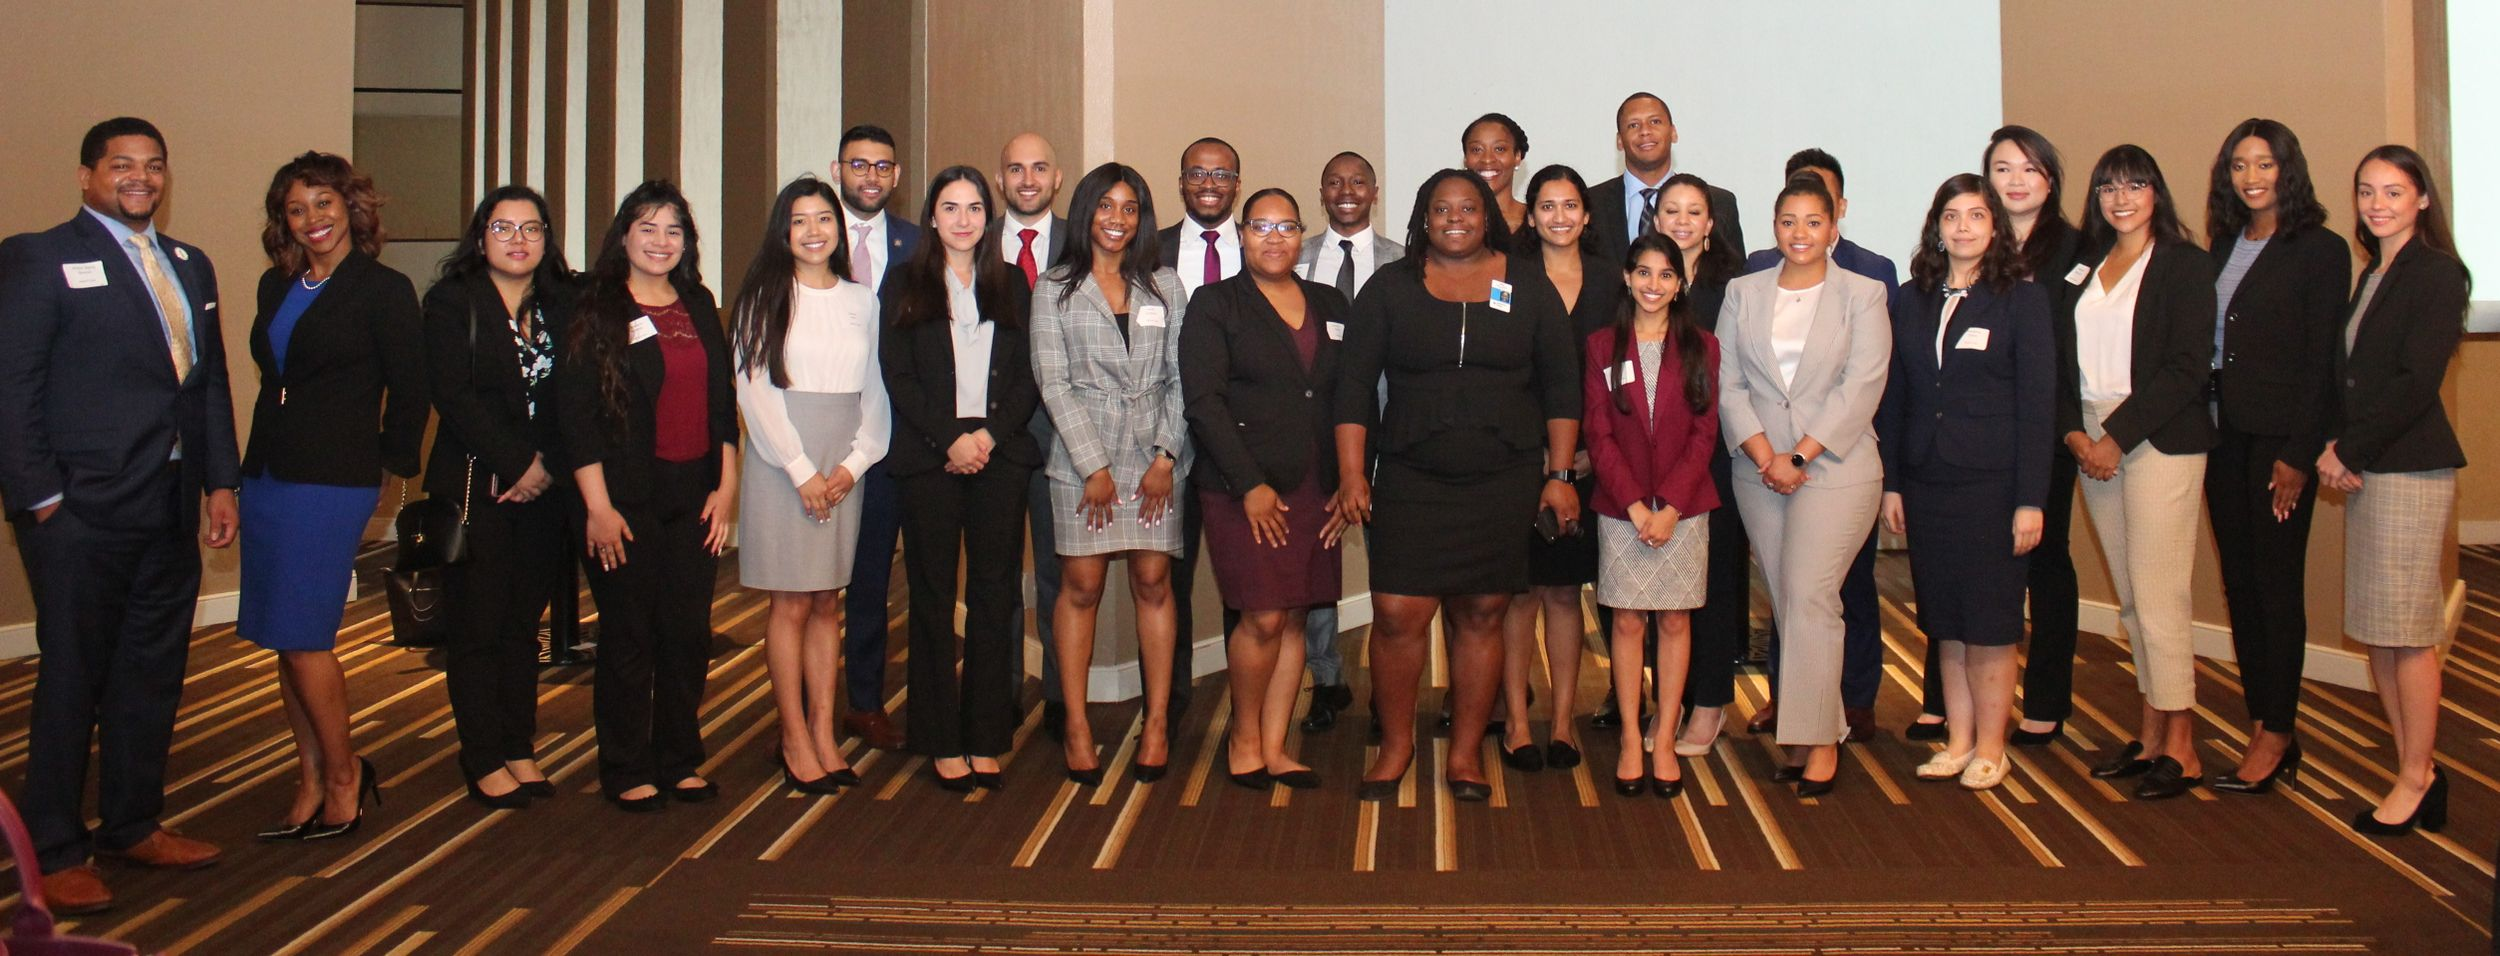 Law students participating in the 2019 MOILP Summer Clerkship Program